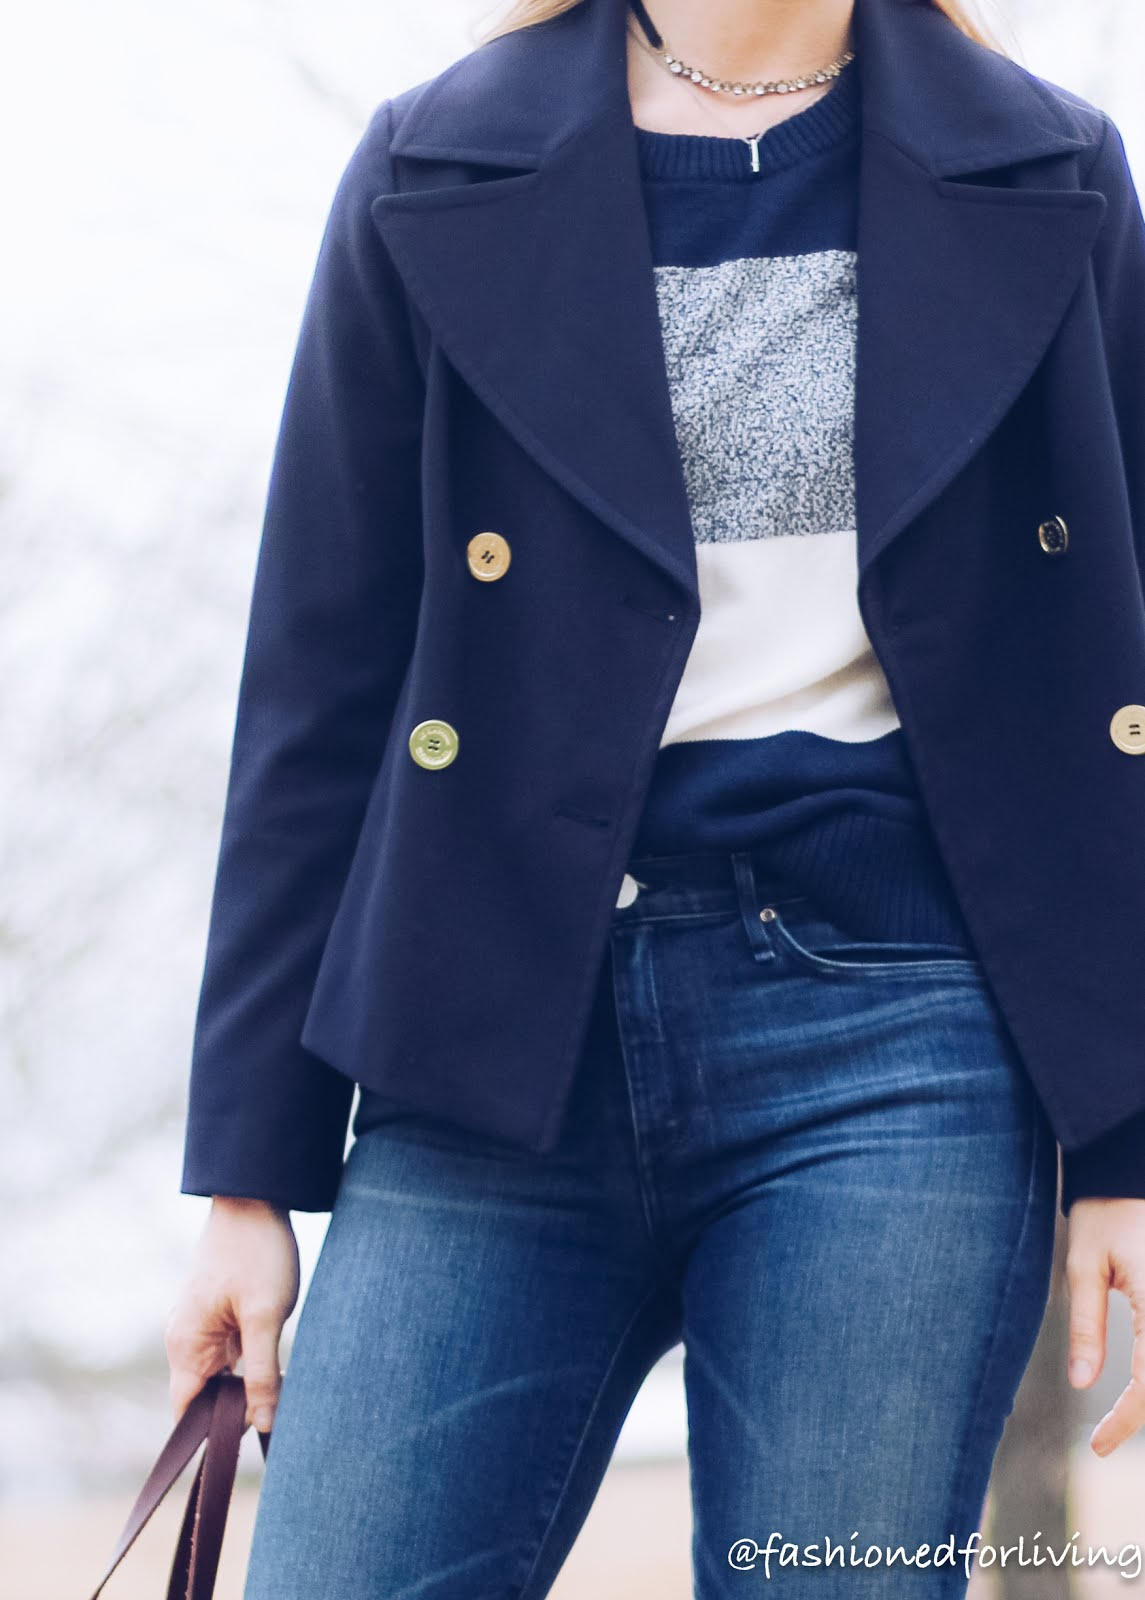 Fashioned For Living cropped jacket striped sweater